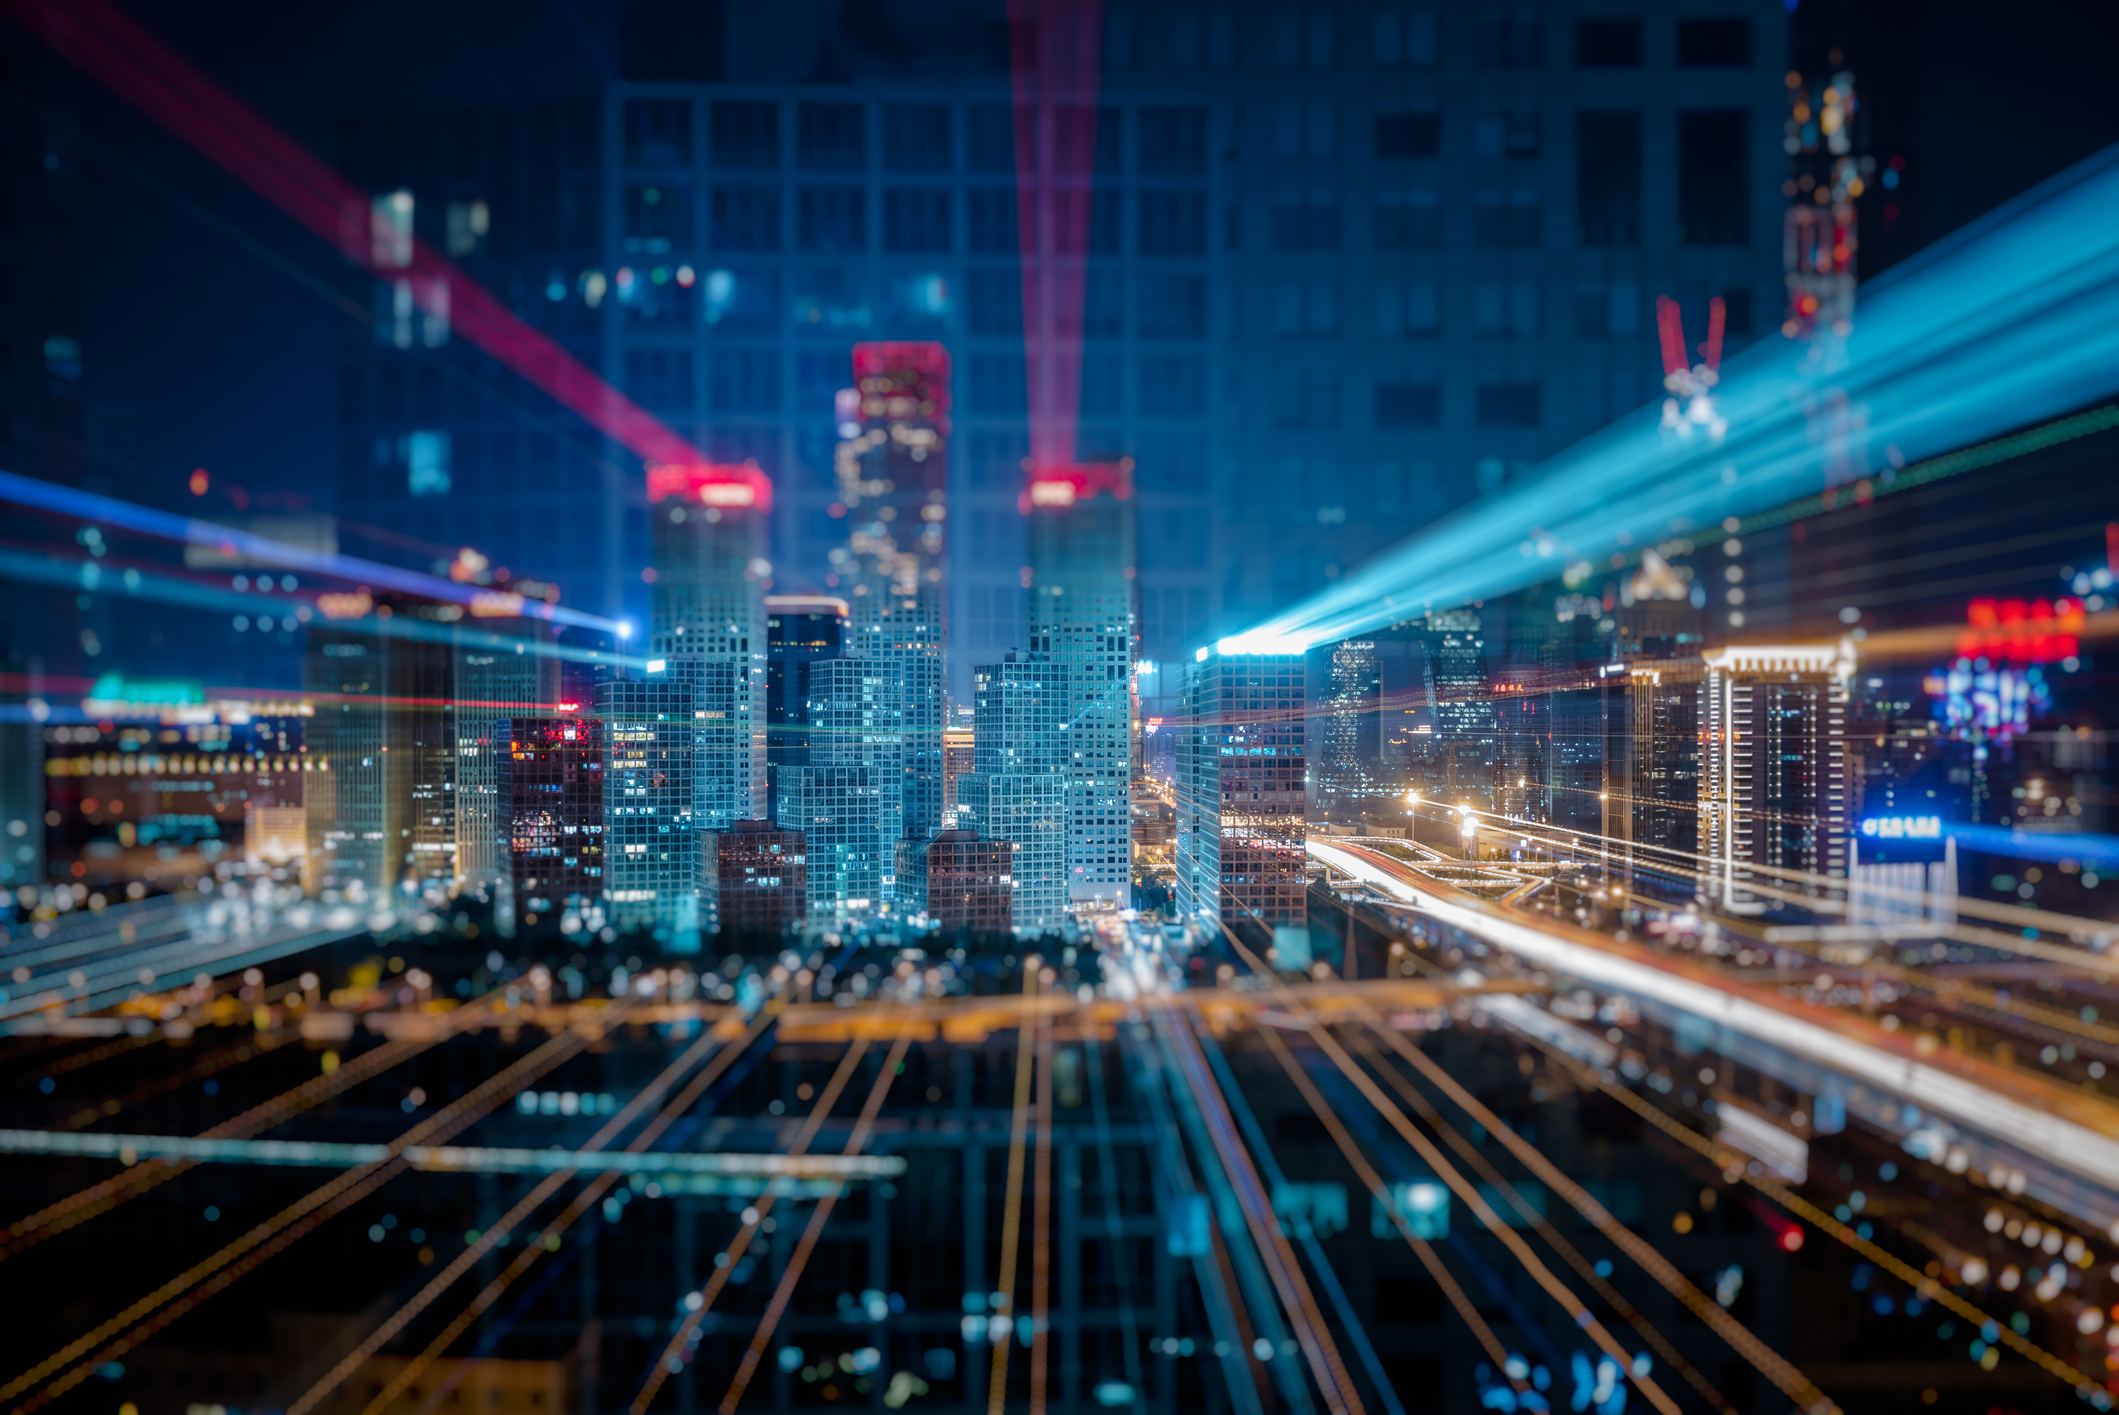 Smart cities will help fight climate change (Awareness is needed)